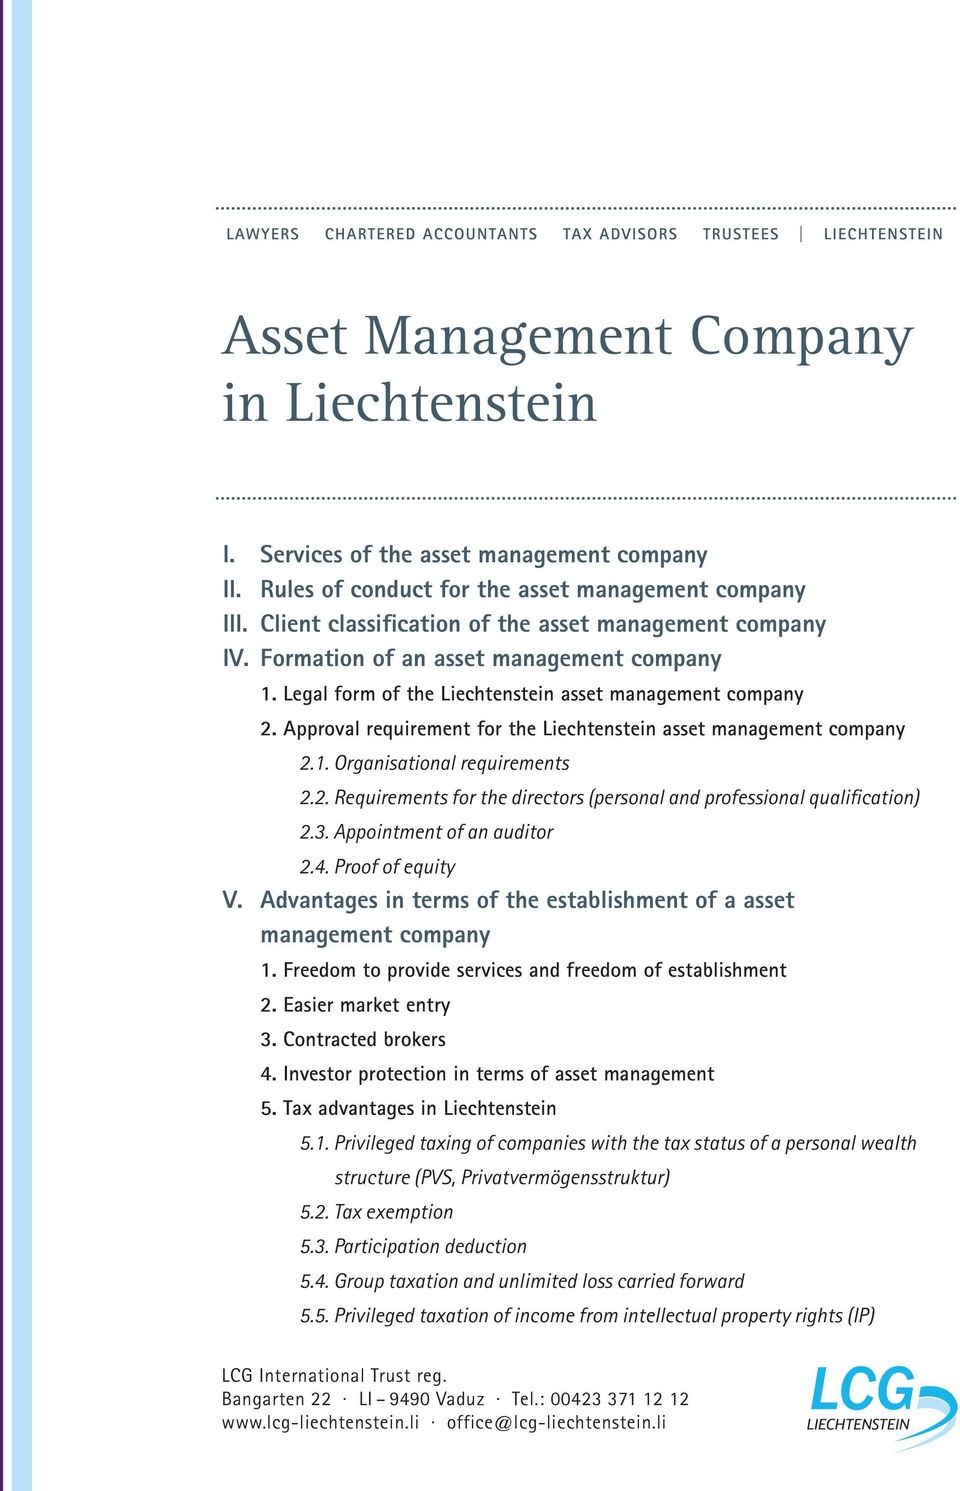 Approval requirement for the Liechtenstein asset management company 2.1. Organisational requirements 2.2. Requirements for the directors (personal and professional qualification) 2.3.